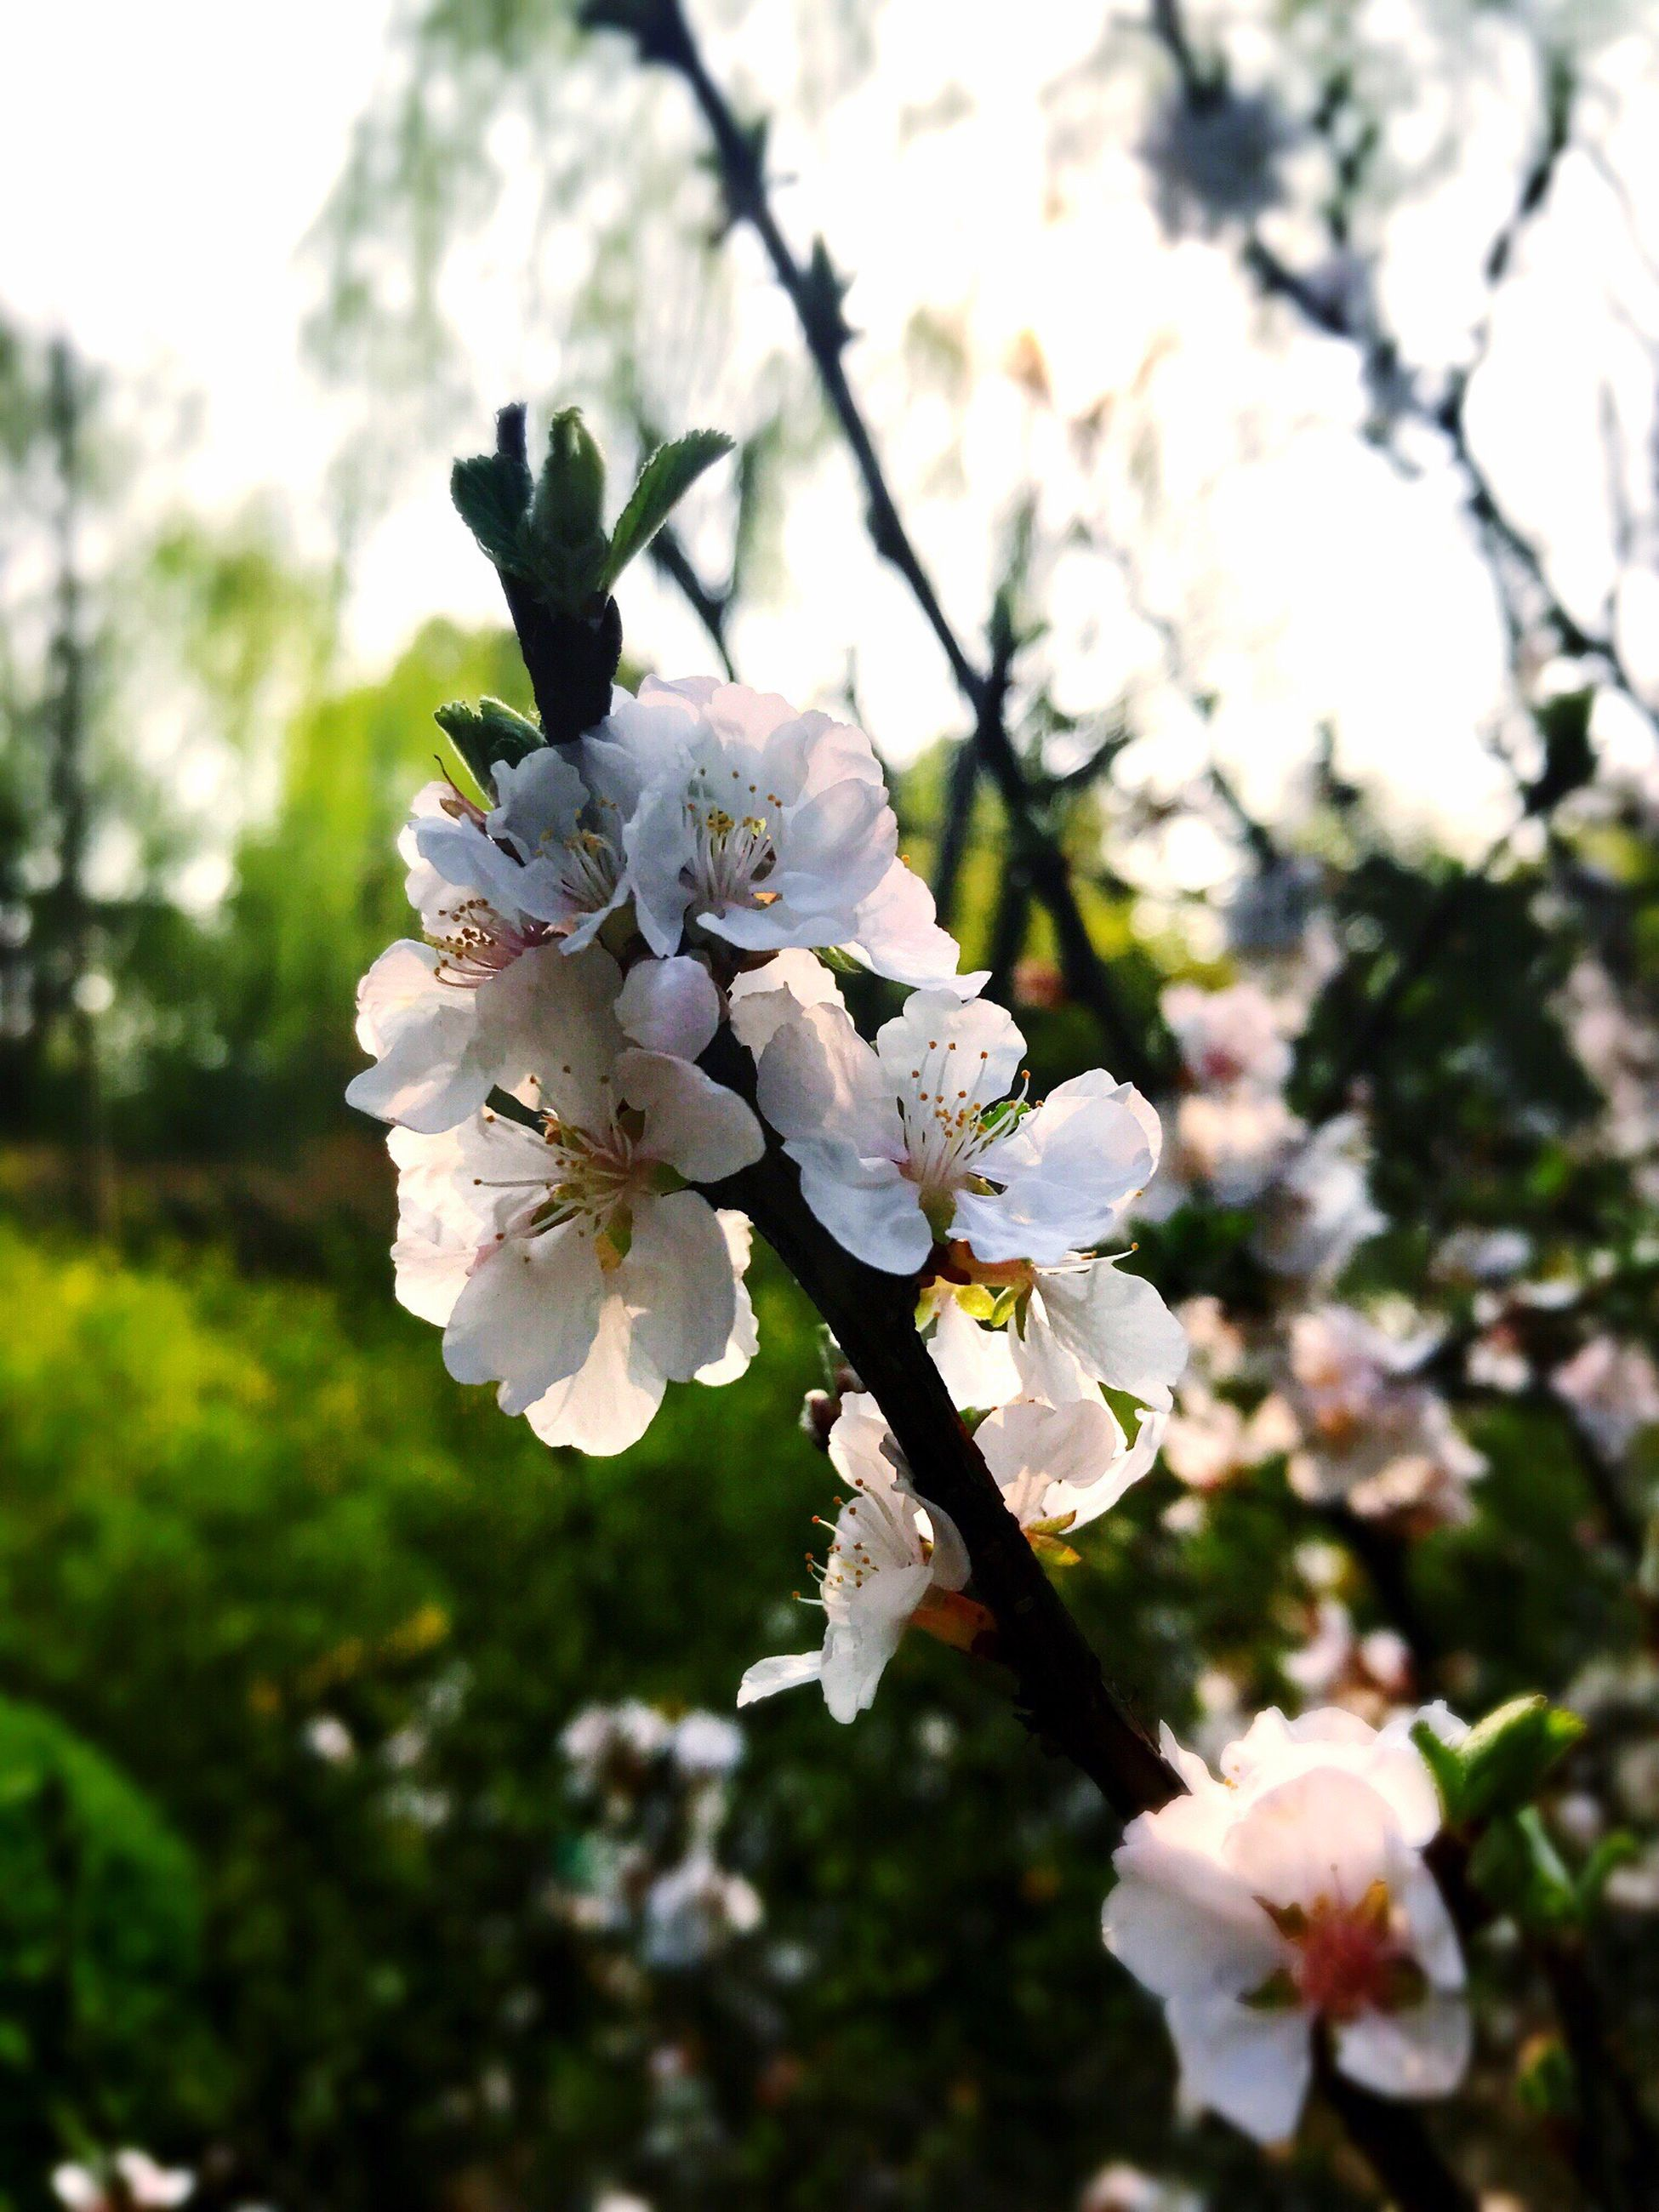 growth, nature, beauty in nature, springtime, flower, tree, twig, fragility, blossom, freshness, branch, close-up, outdoors, no people, flower head, petal, day, plum blossom, sky